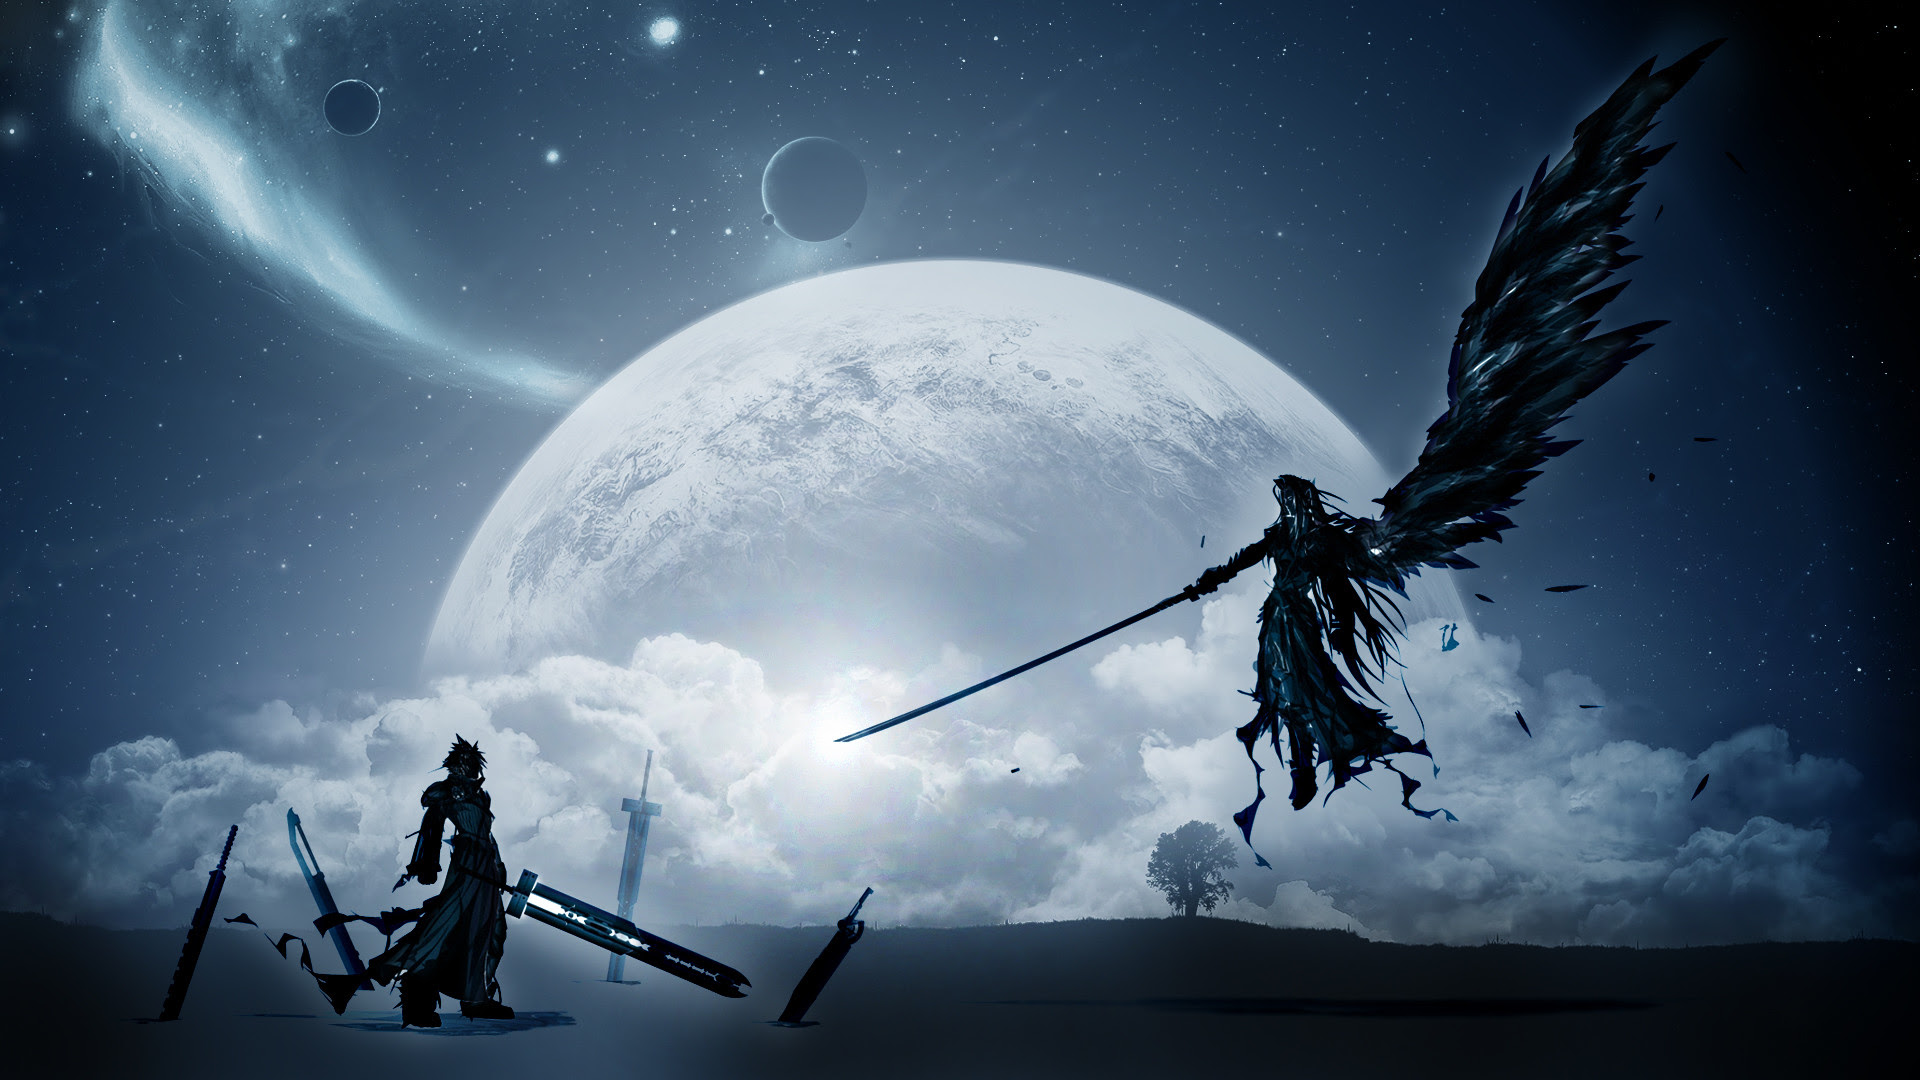 Final Fantasy Wallpaper 1080p 75 Images